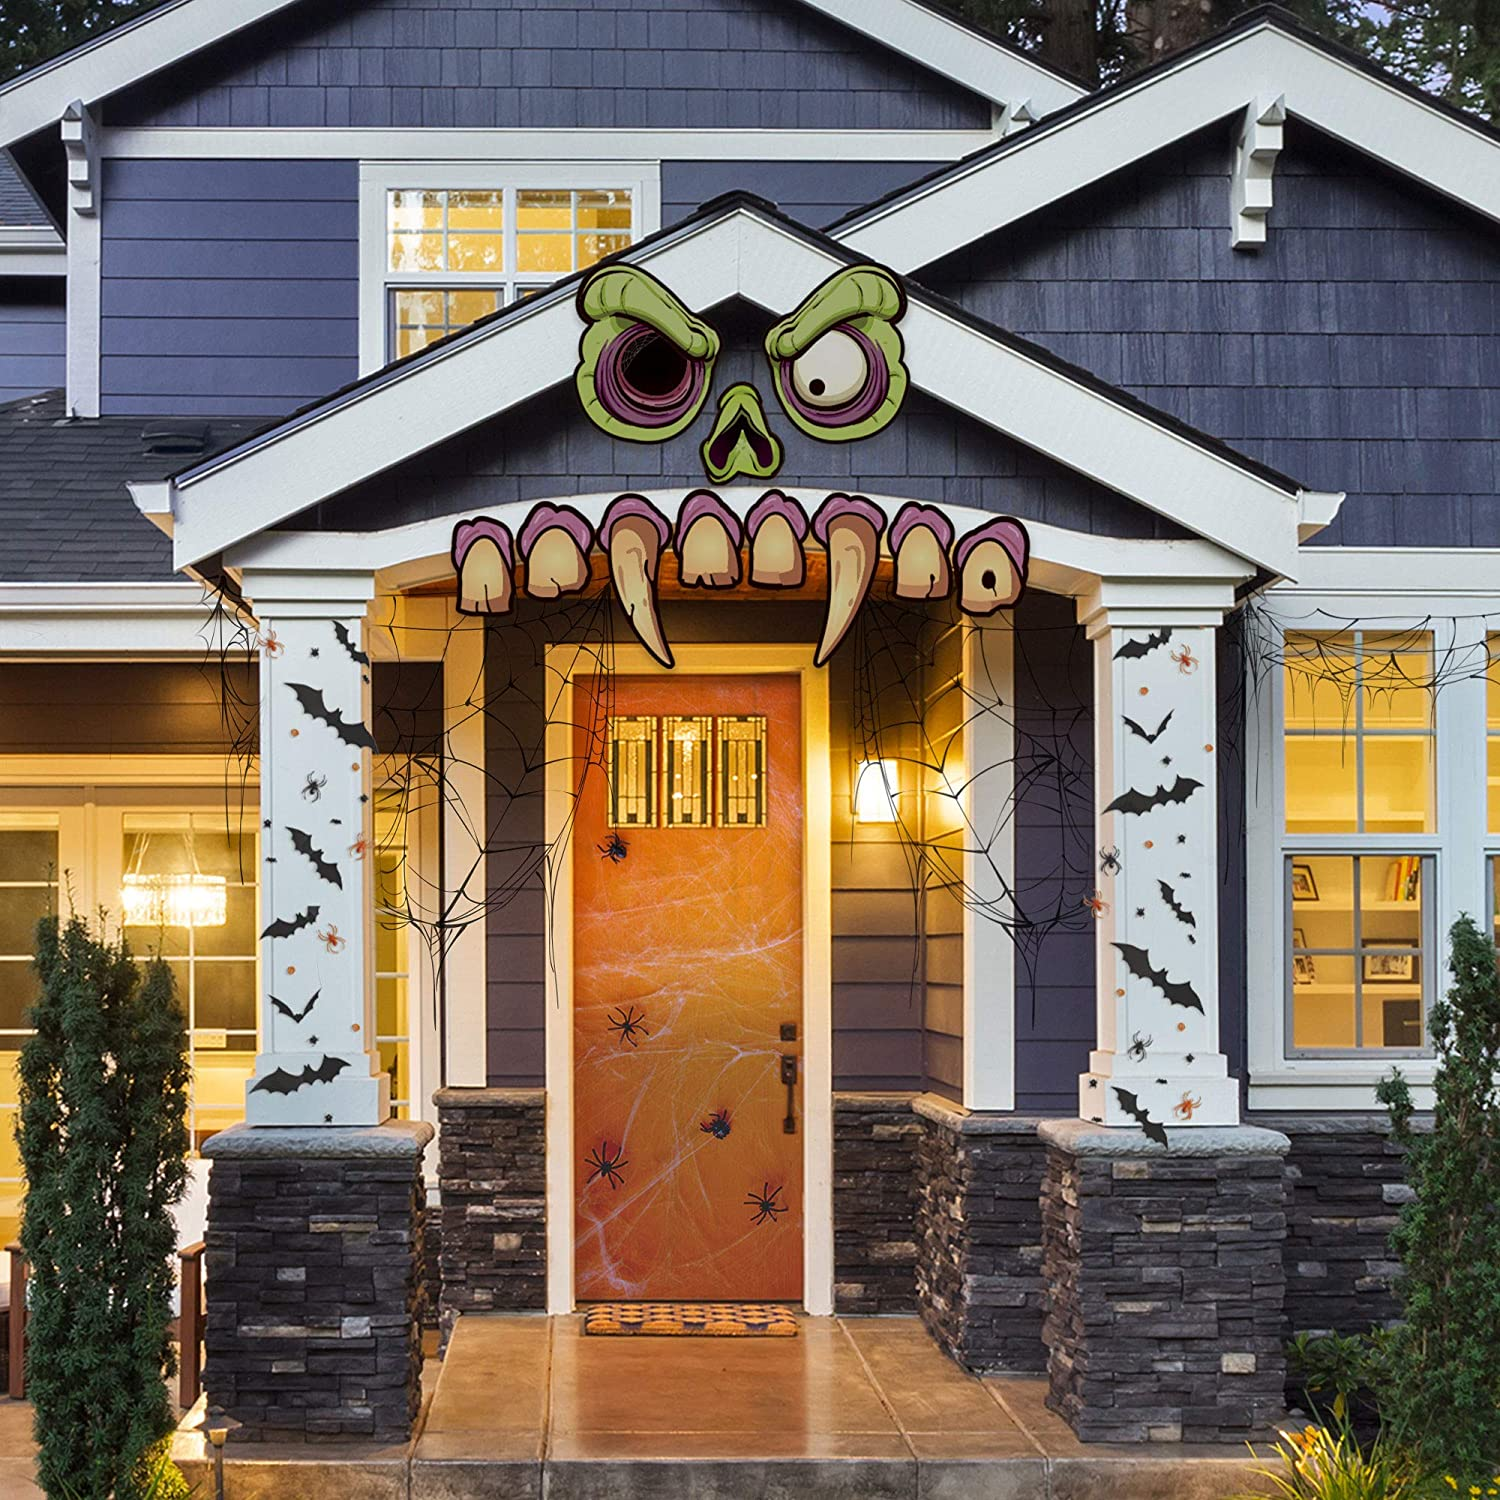 Large Hanging Outdoor Halloween Decorations.Mad Monster Face Outdoor Halloween Haunted House Party Decoration Large Scary Zombie Home Decor Garage Door Car Funny Creative Decoration 11 Easy Hang Pieces 8 5 21 5 Amazon In Garden Outdoors